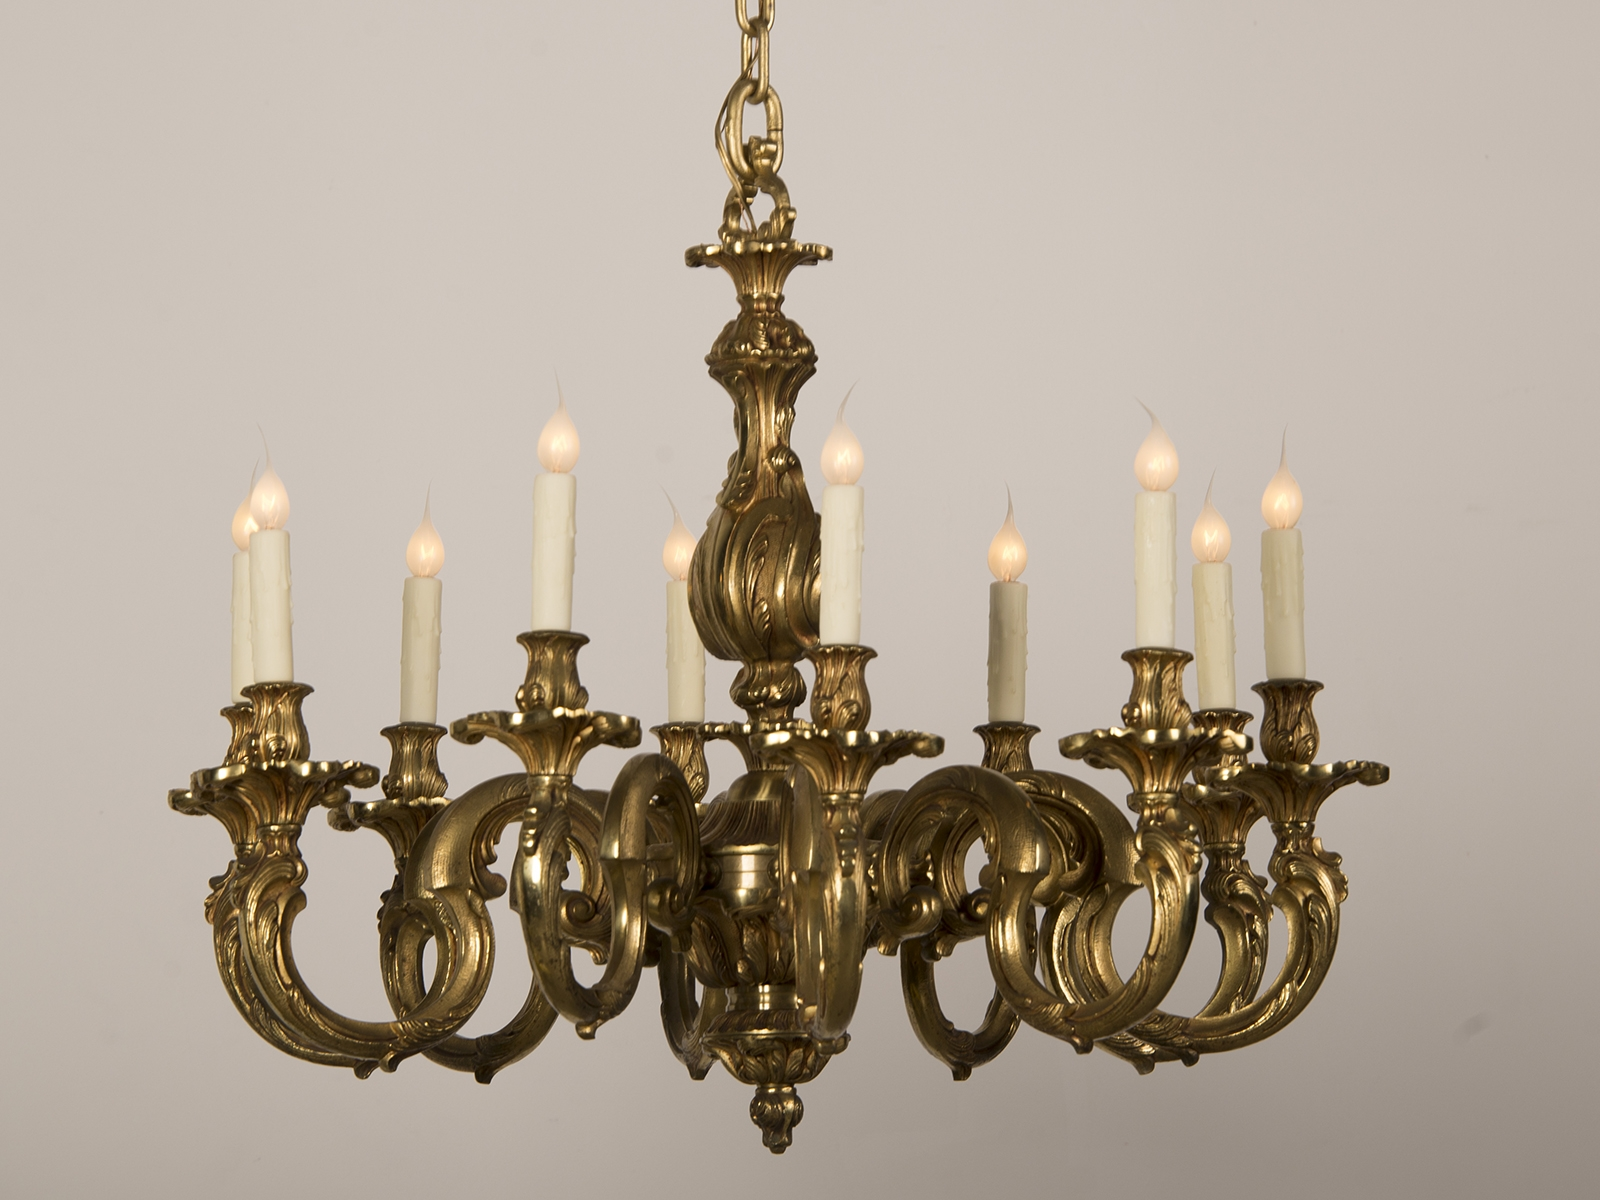 Antique French Louis Xv Style Ten Arm Bronze Dre Chandelier Circa Pertaining To Vintage French Chandeliers (#2 of 12)